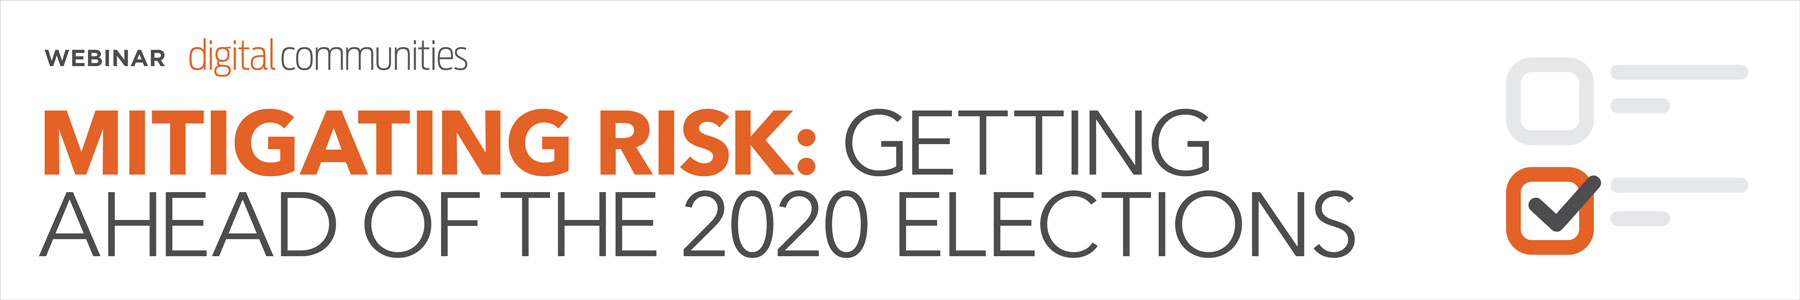 Mitigating Risk: Getting Ahead of the 2020 Elections